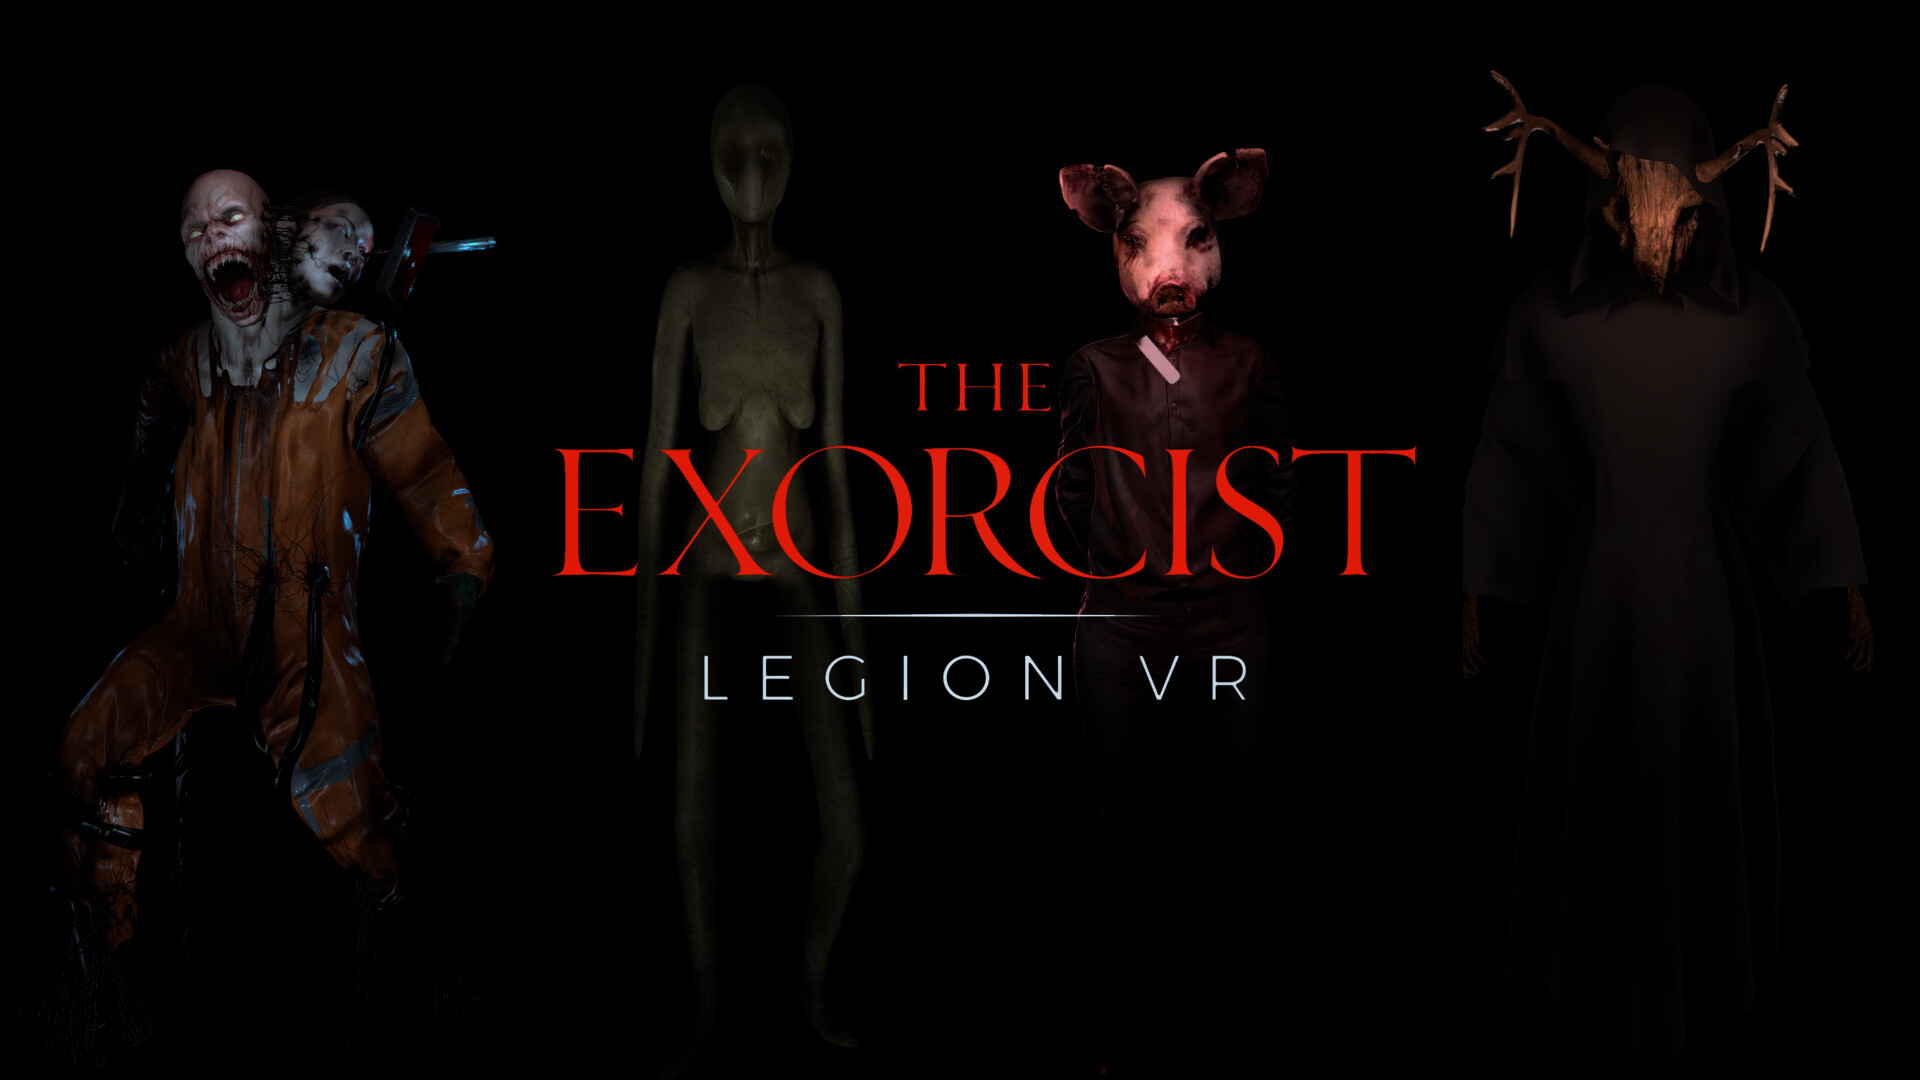 The Exorcist: Legion VR